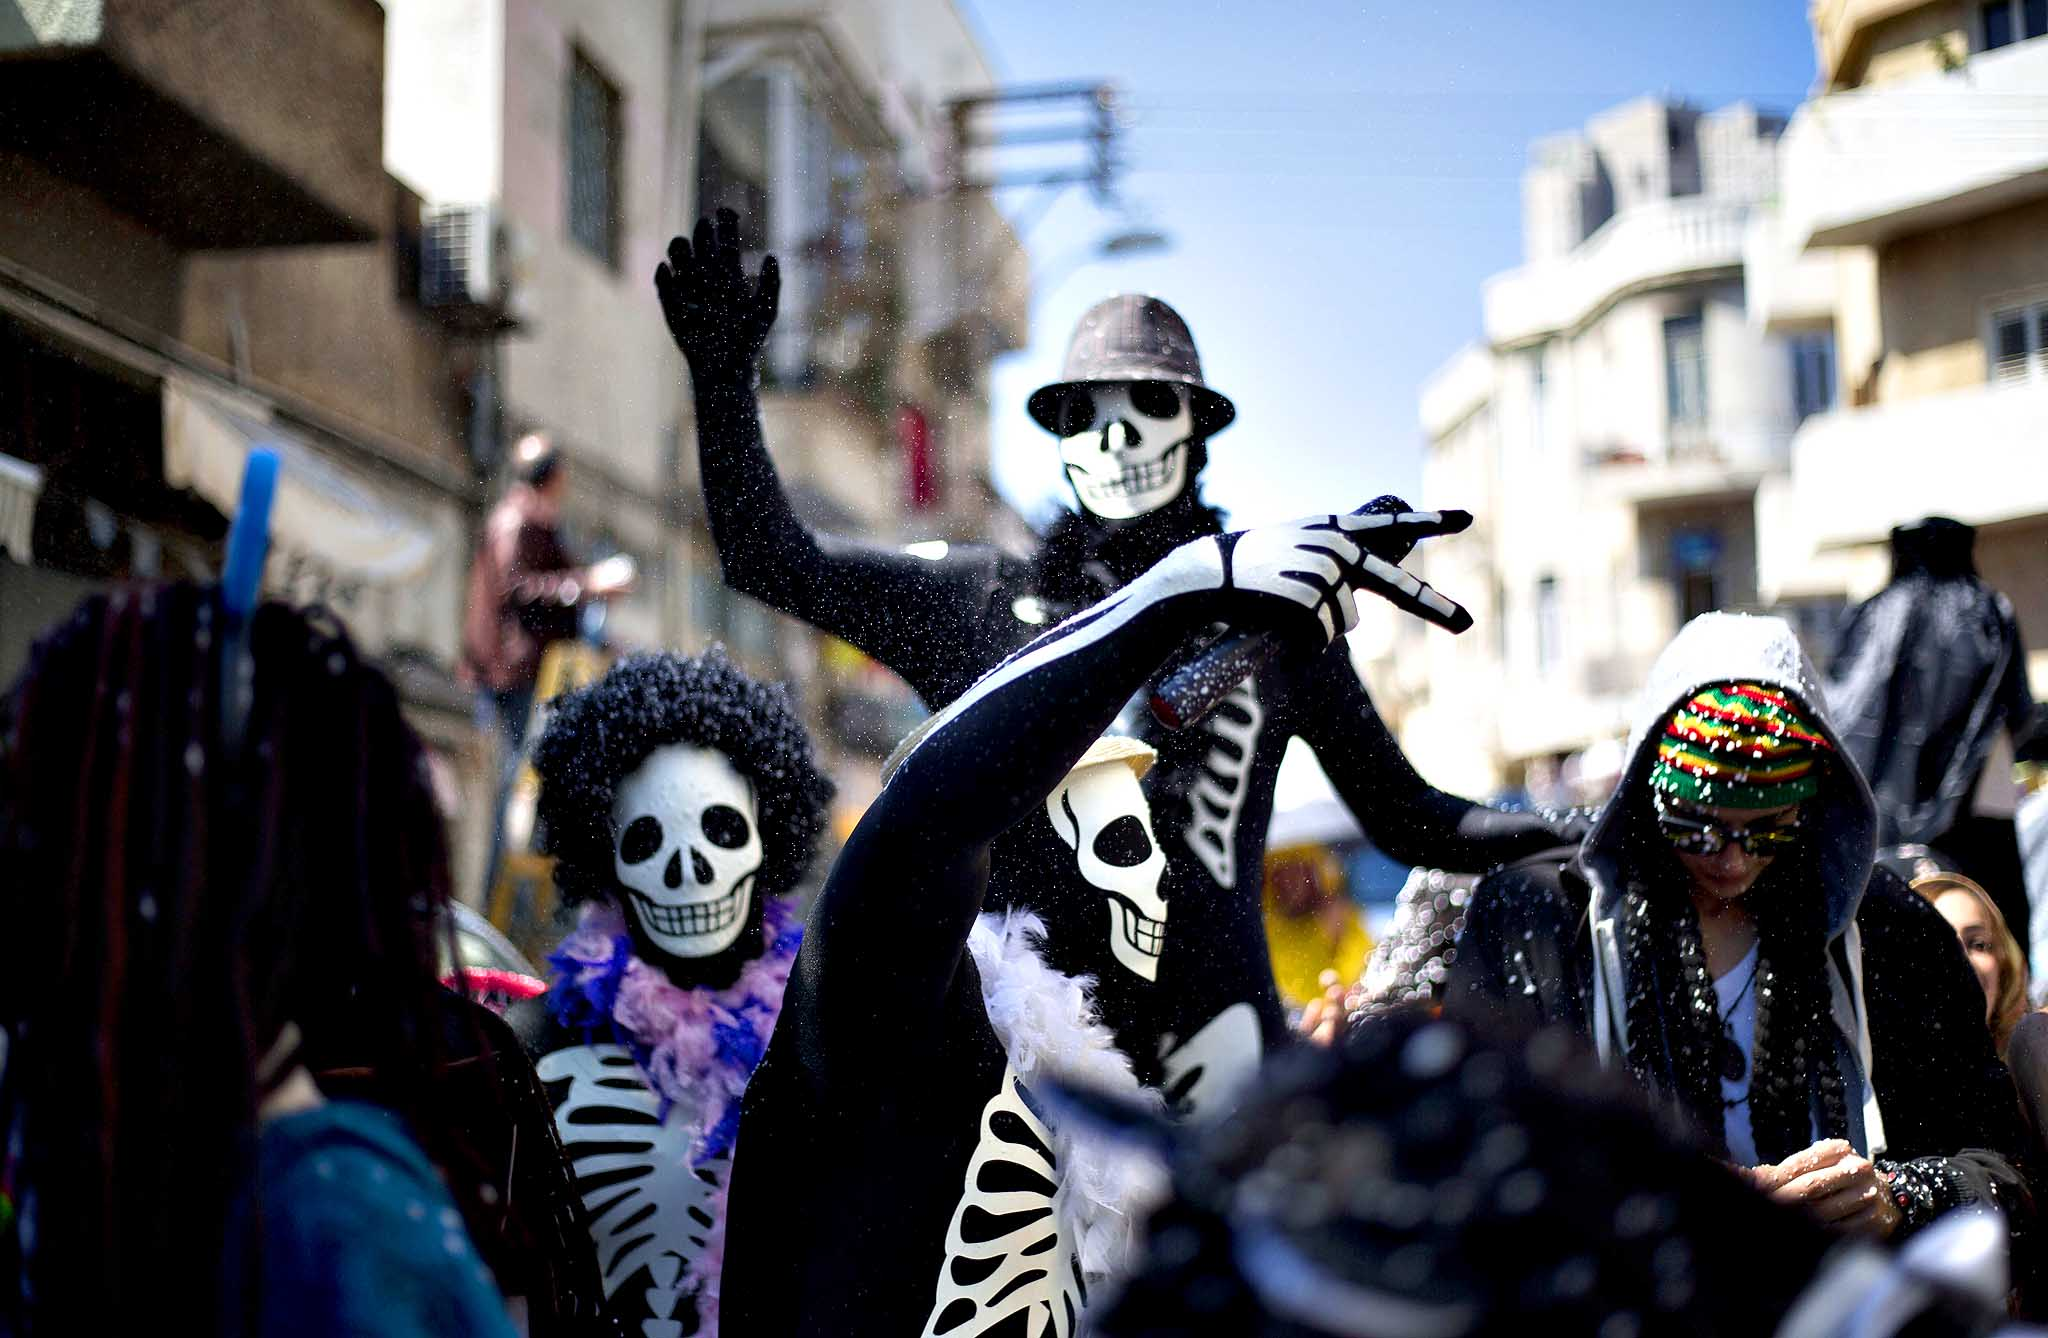 Young children of foreign migrant workers wear costumes as they march in a Purim parade in Tel Aviv, Israel, Friday, March 14, 2014. The Jewish holiday of Purim commemorates the Jews' salvation from genocide in ancient Persia, as recounted in the Book of Esther, which is read in synagogues. Other customs include: sending food parcels and giving charity; dressing up in masks and costumes; eating a festive meal; and public celebrations.